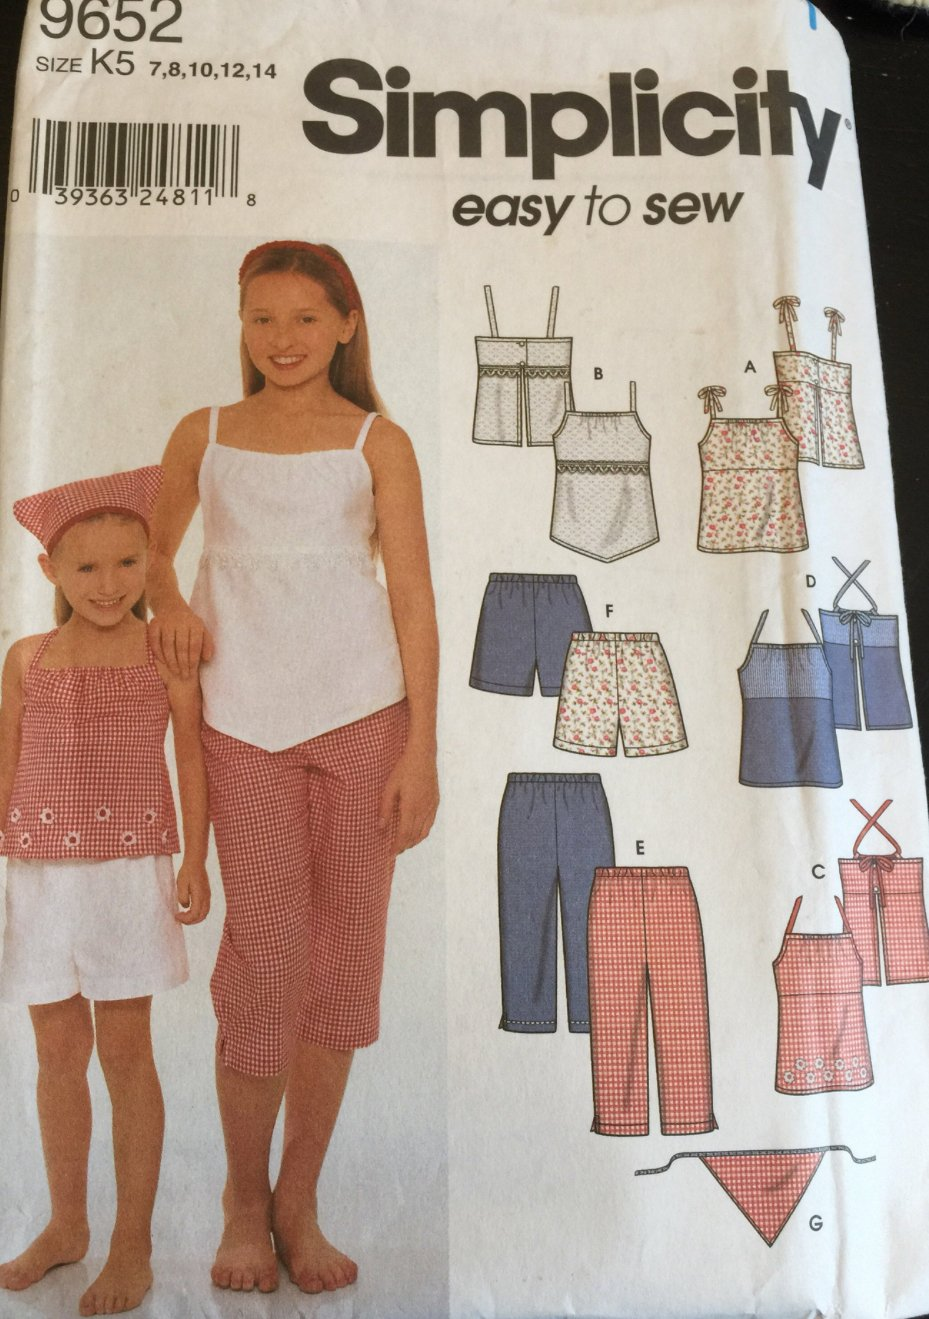 SIMPLICITY 9652 Sewing Pattern for Child's and Girls' Tops, Pants, Shorts & Scarf